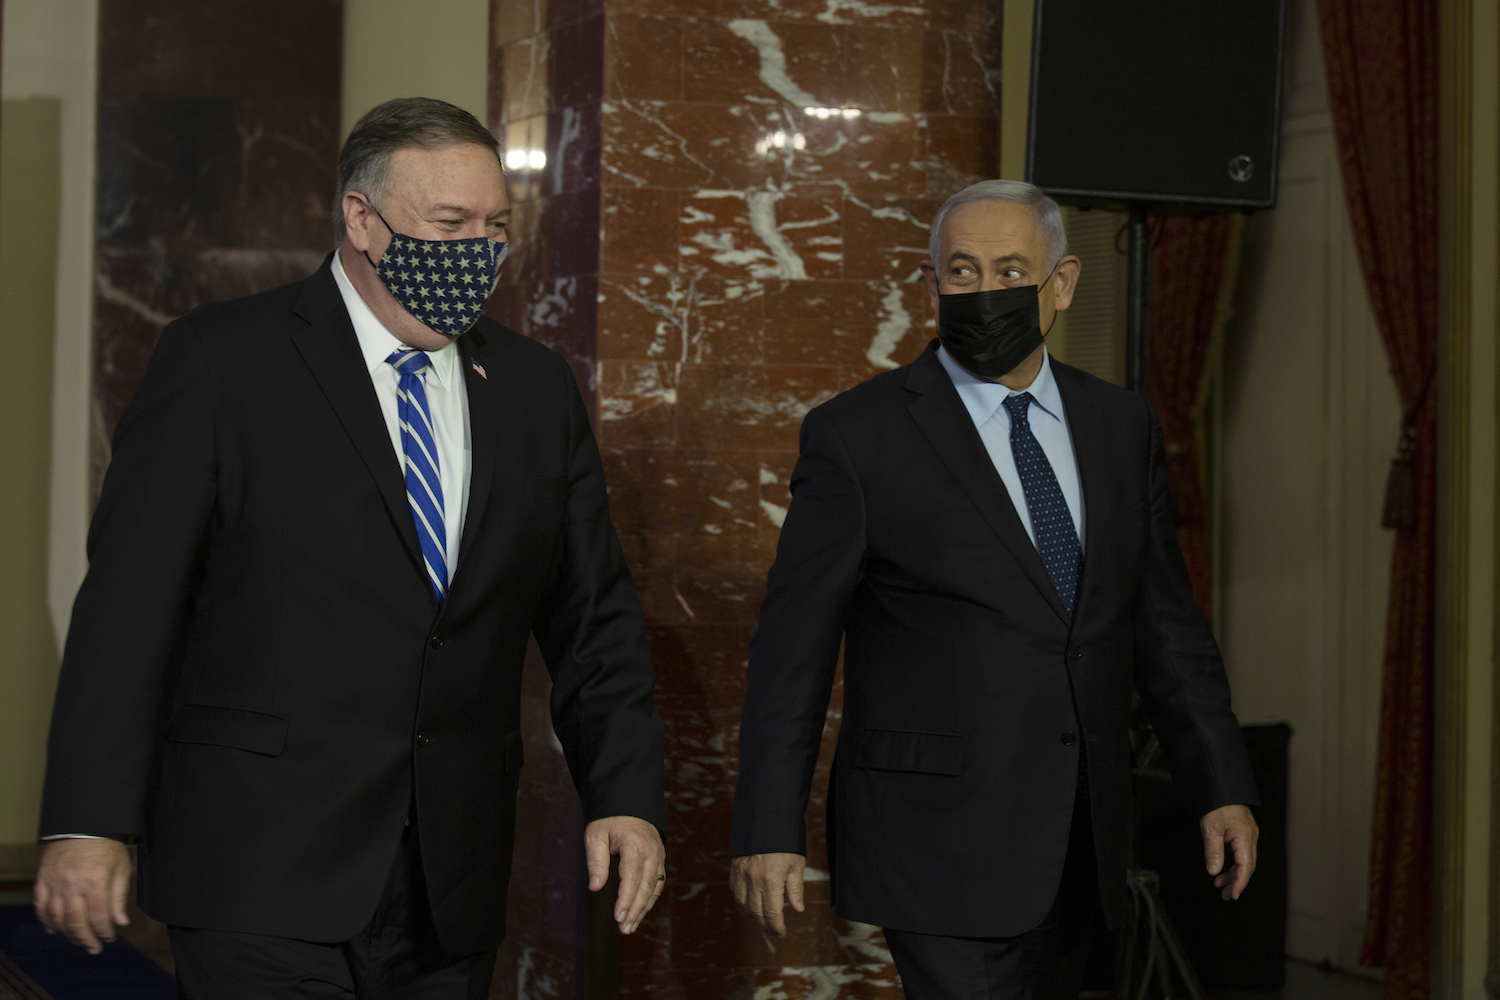 US Secretary of State Mike Pompeo and Israeli Prime Minister Benjamin Netanyahu during a joint press conference in Jerusalem, November 19, 2020. (Maya Alleruzzo/Flash90)